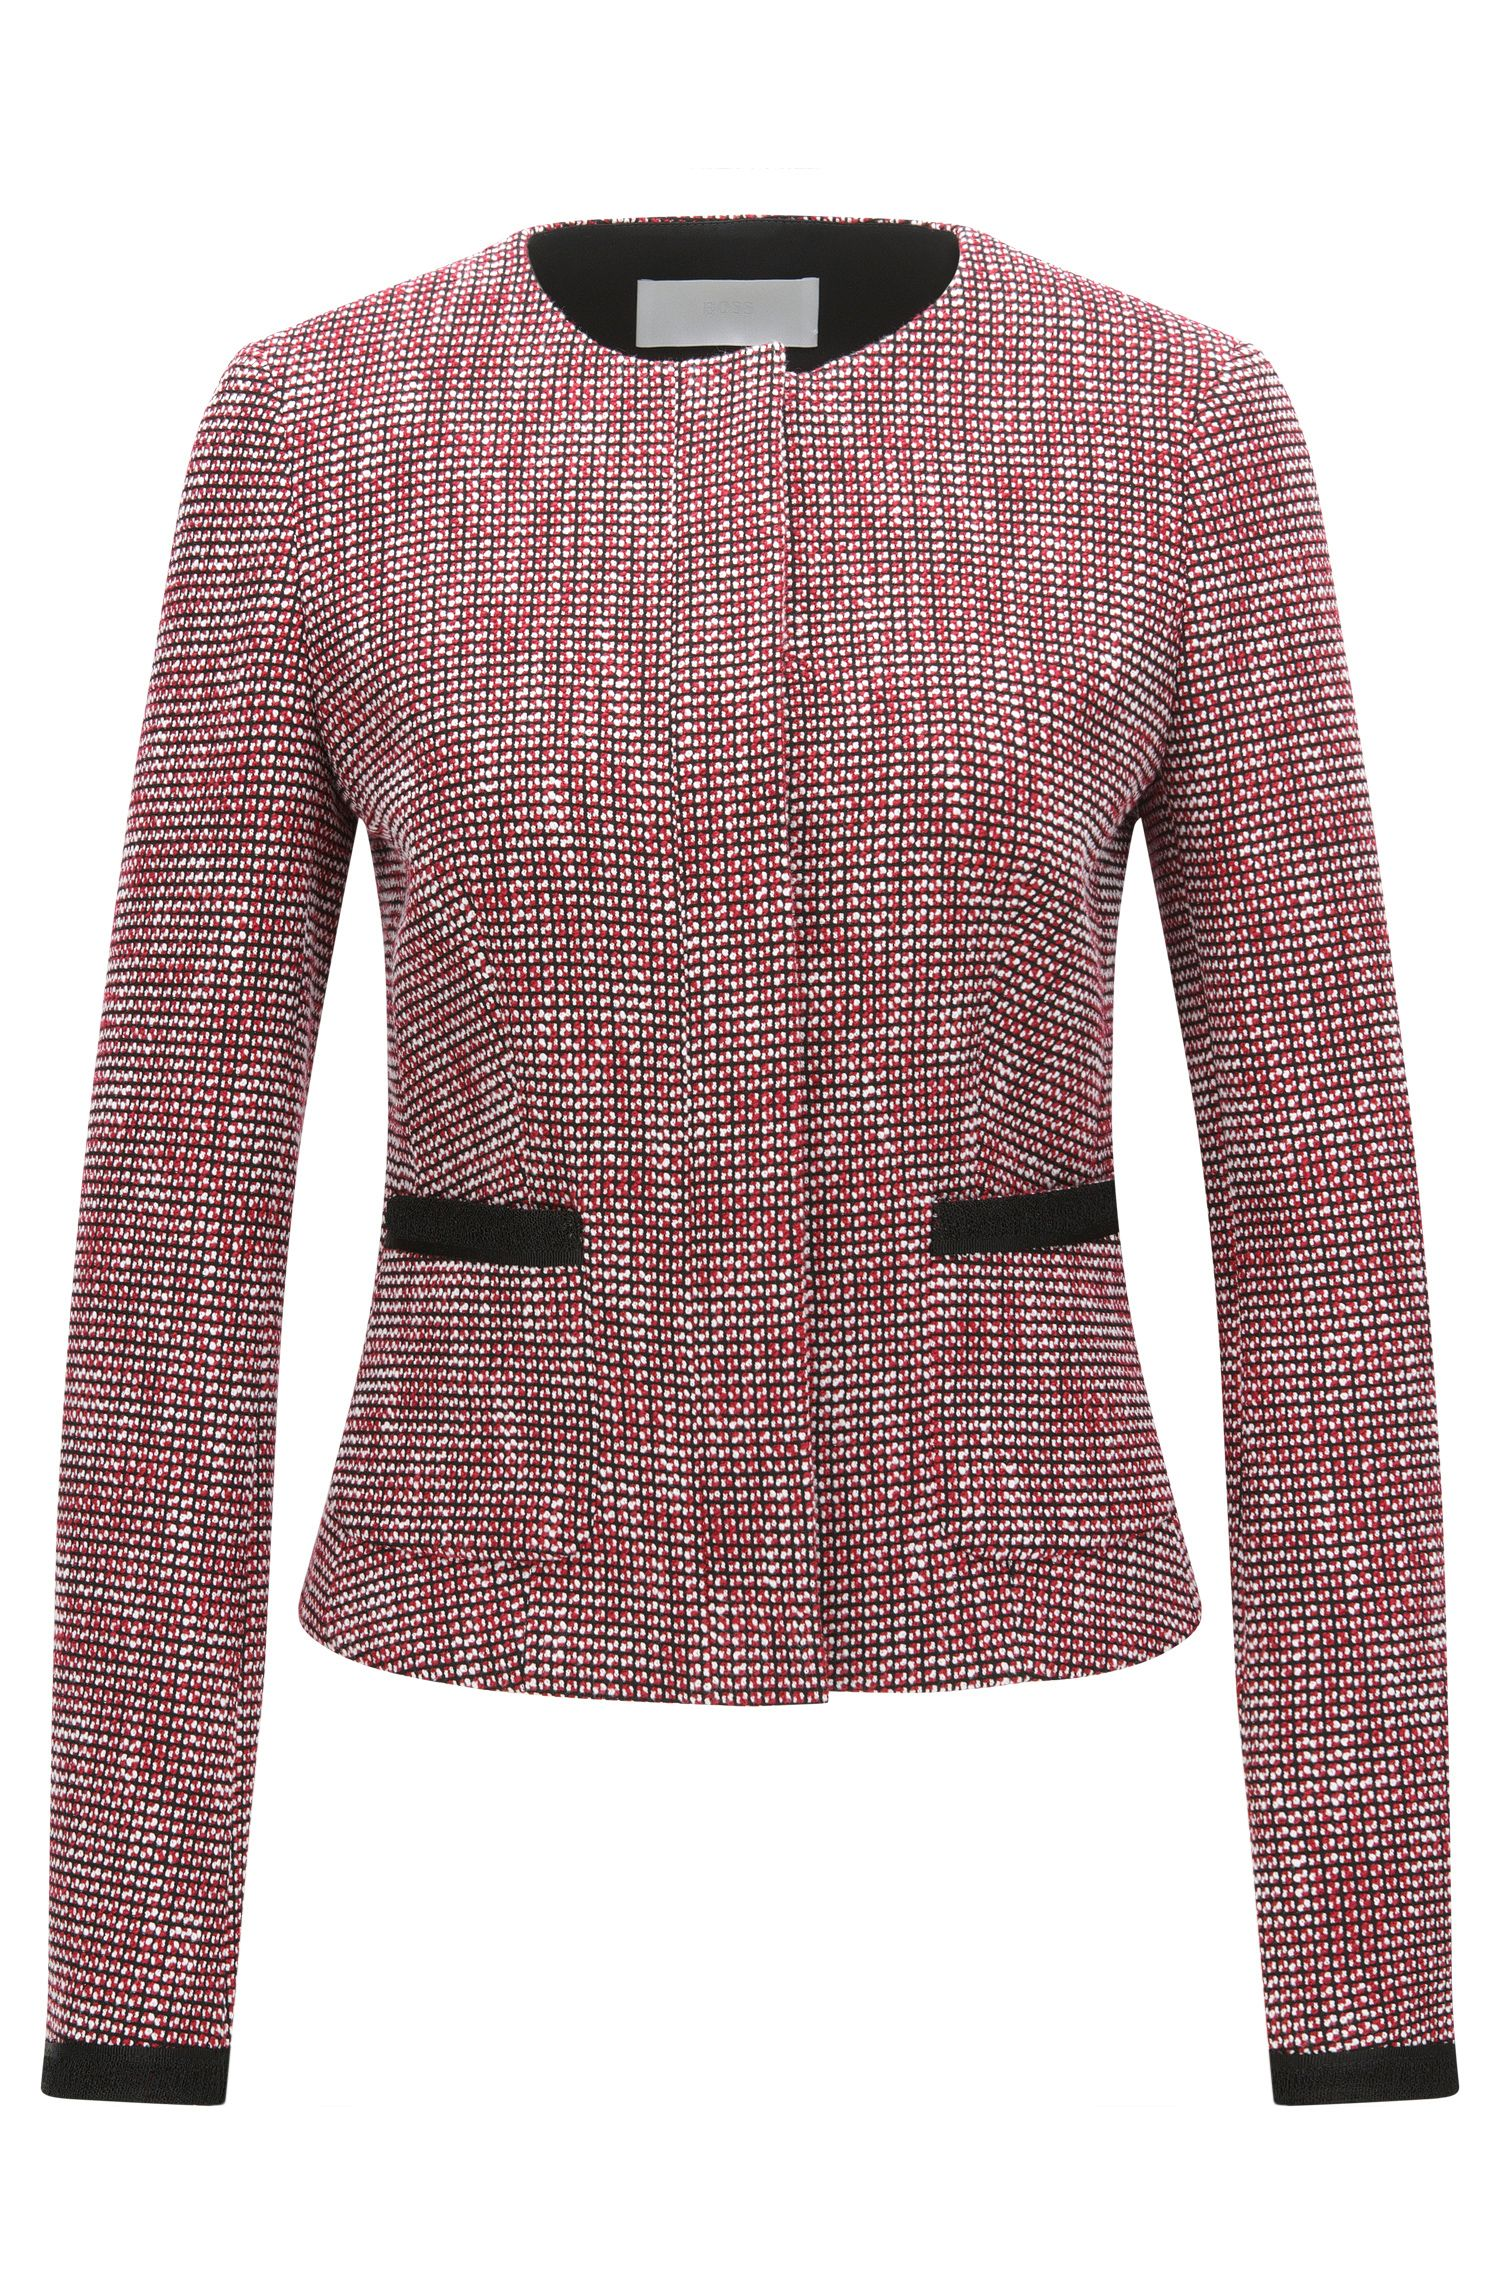 Regular-fit blazer in een meerkleurige jacquard